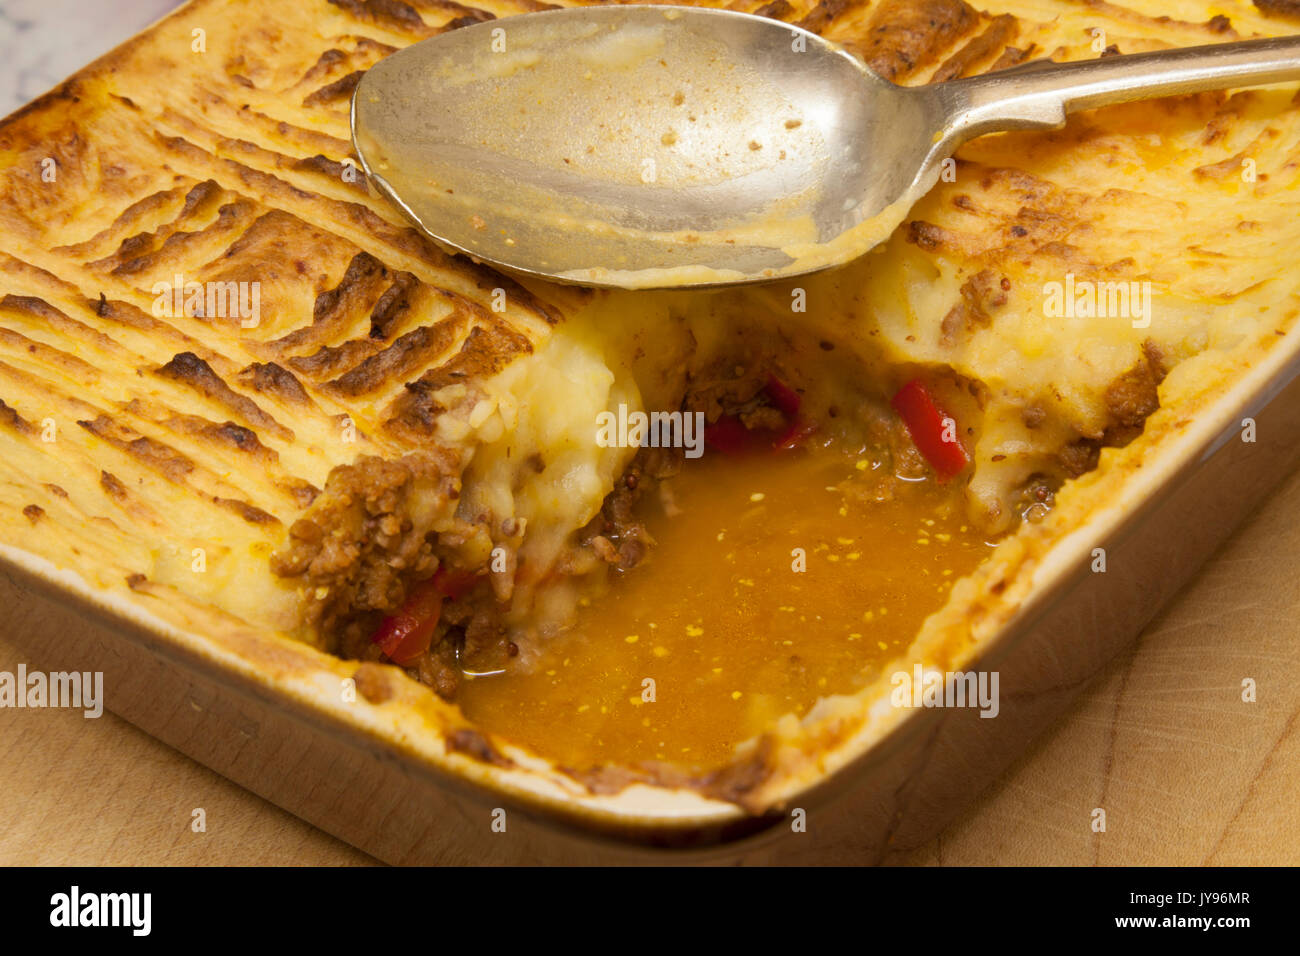 Homemade cottage pie with an Italian style twist hot out of the oven with a portion missing, made with minced beef, red peppers and leeks. - Stock Image